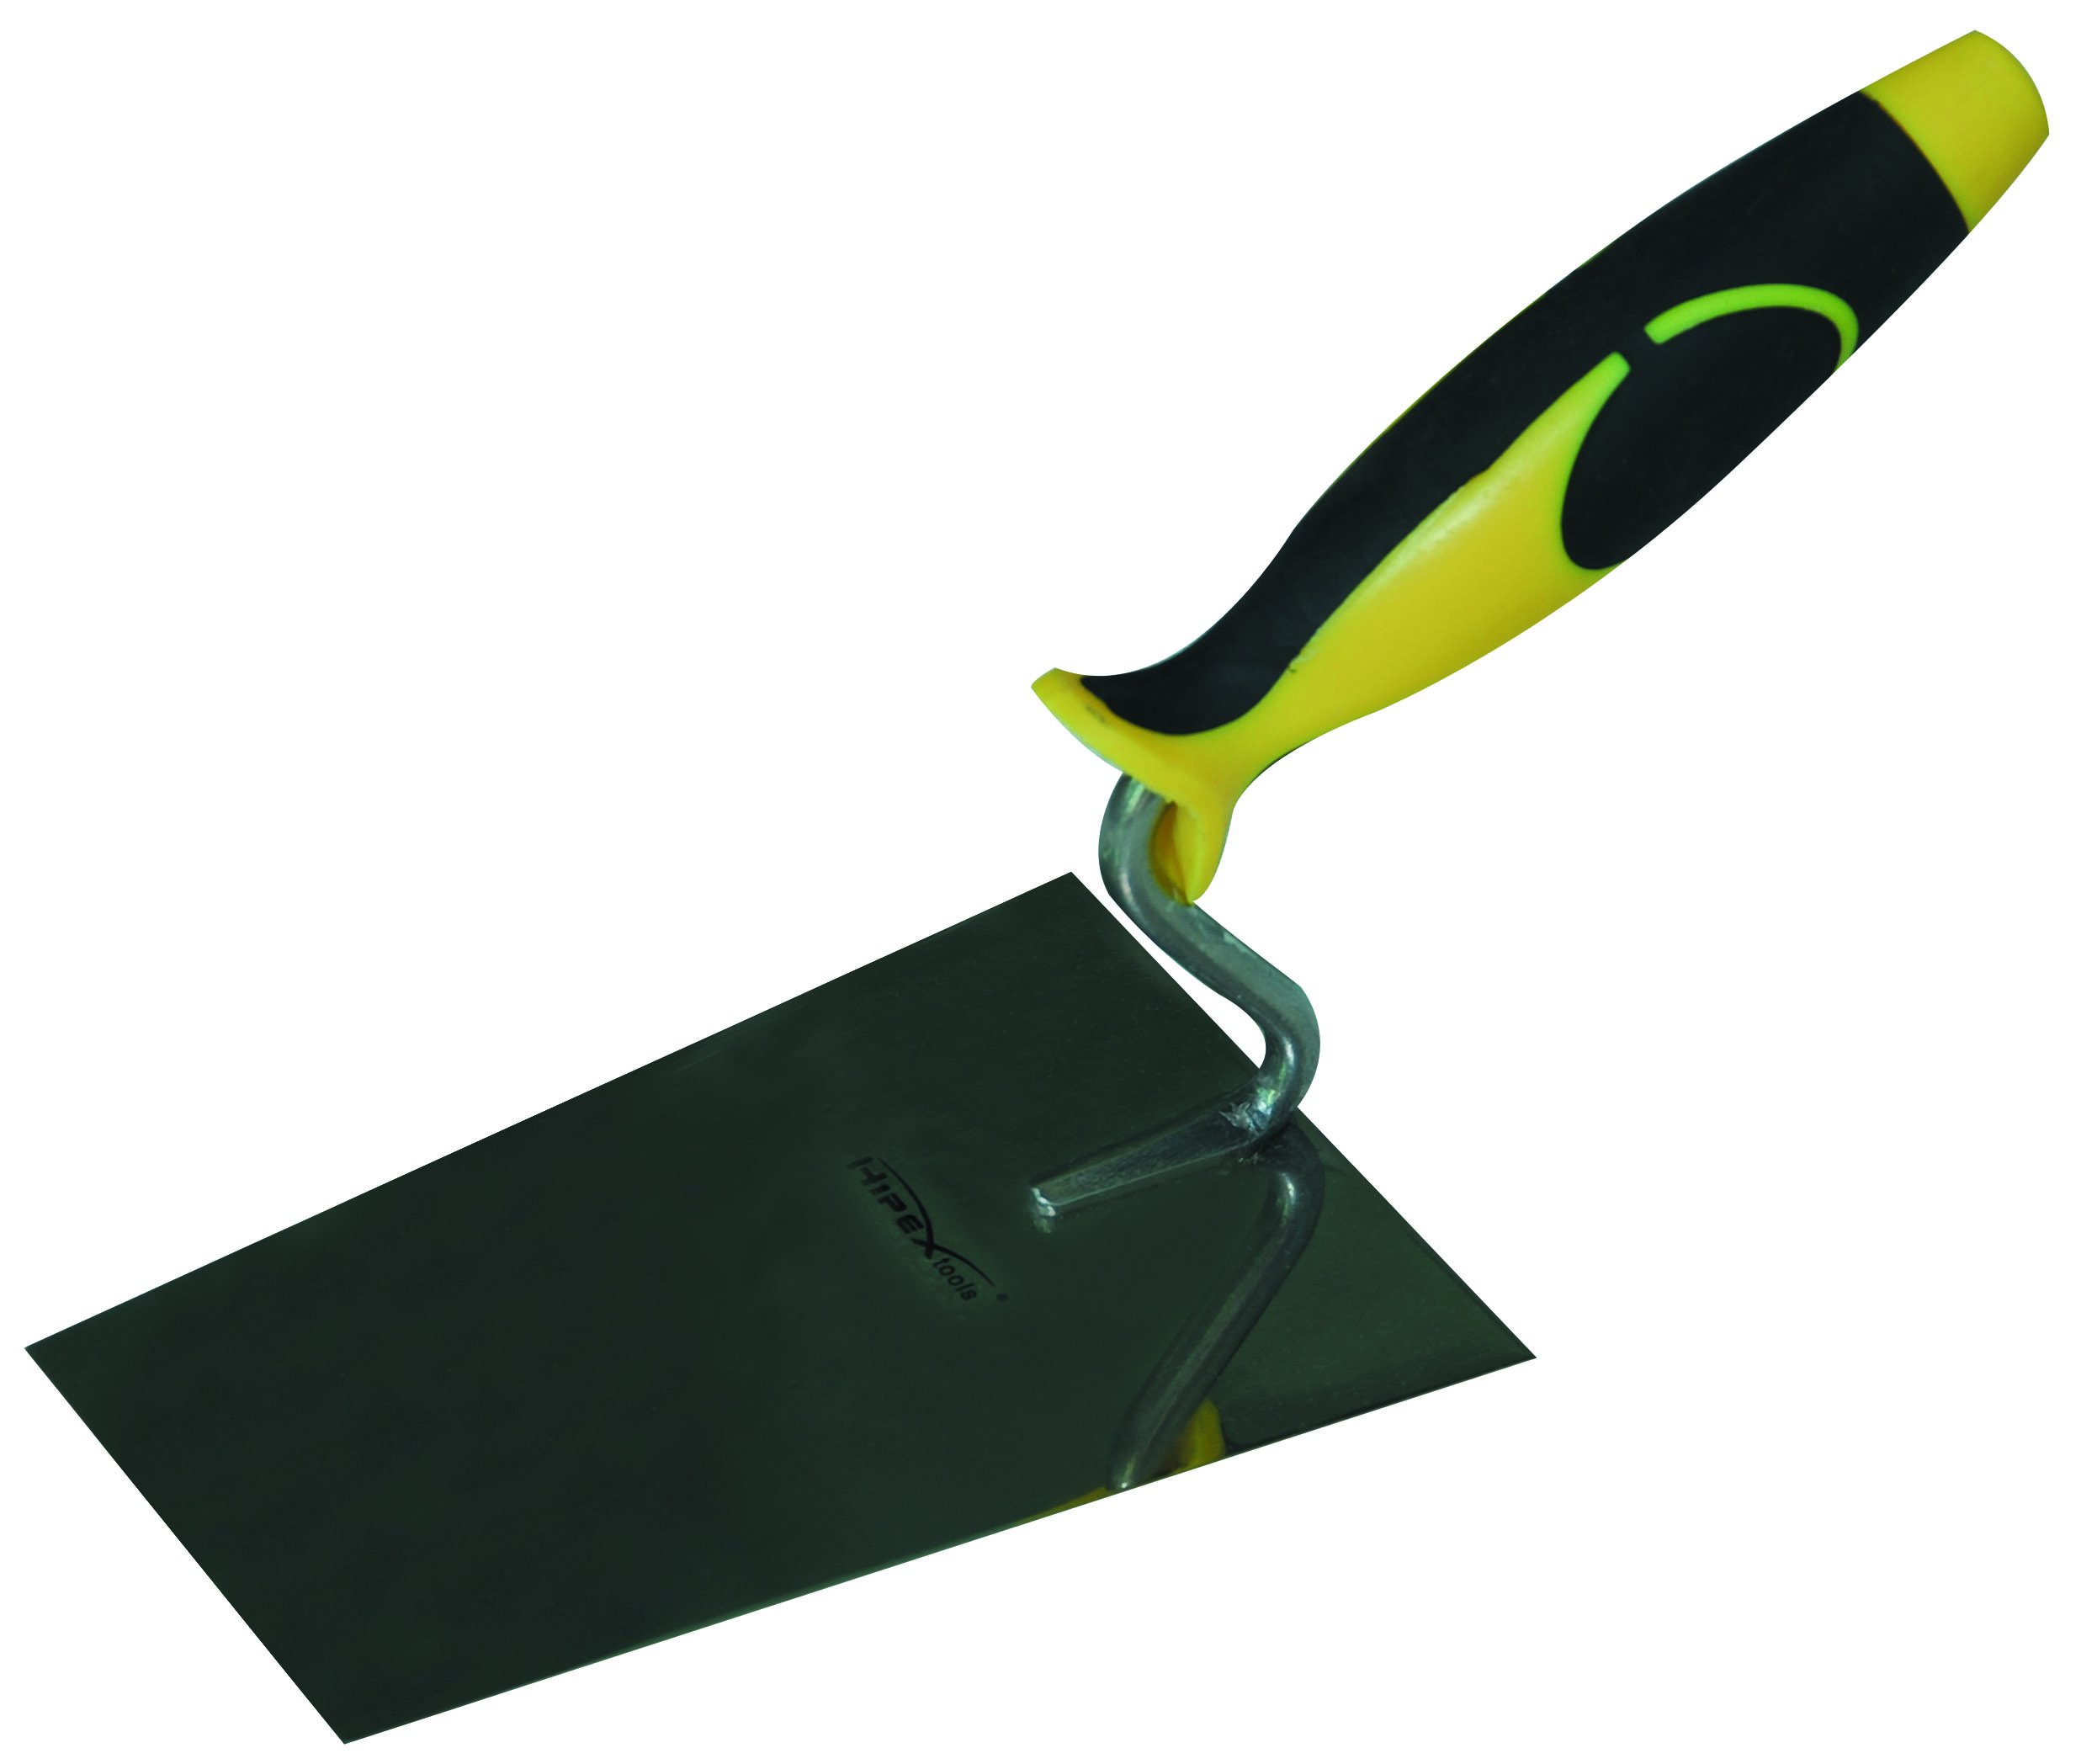 Stainless Steel Bricklaying Trowels